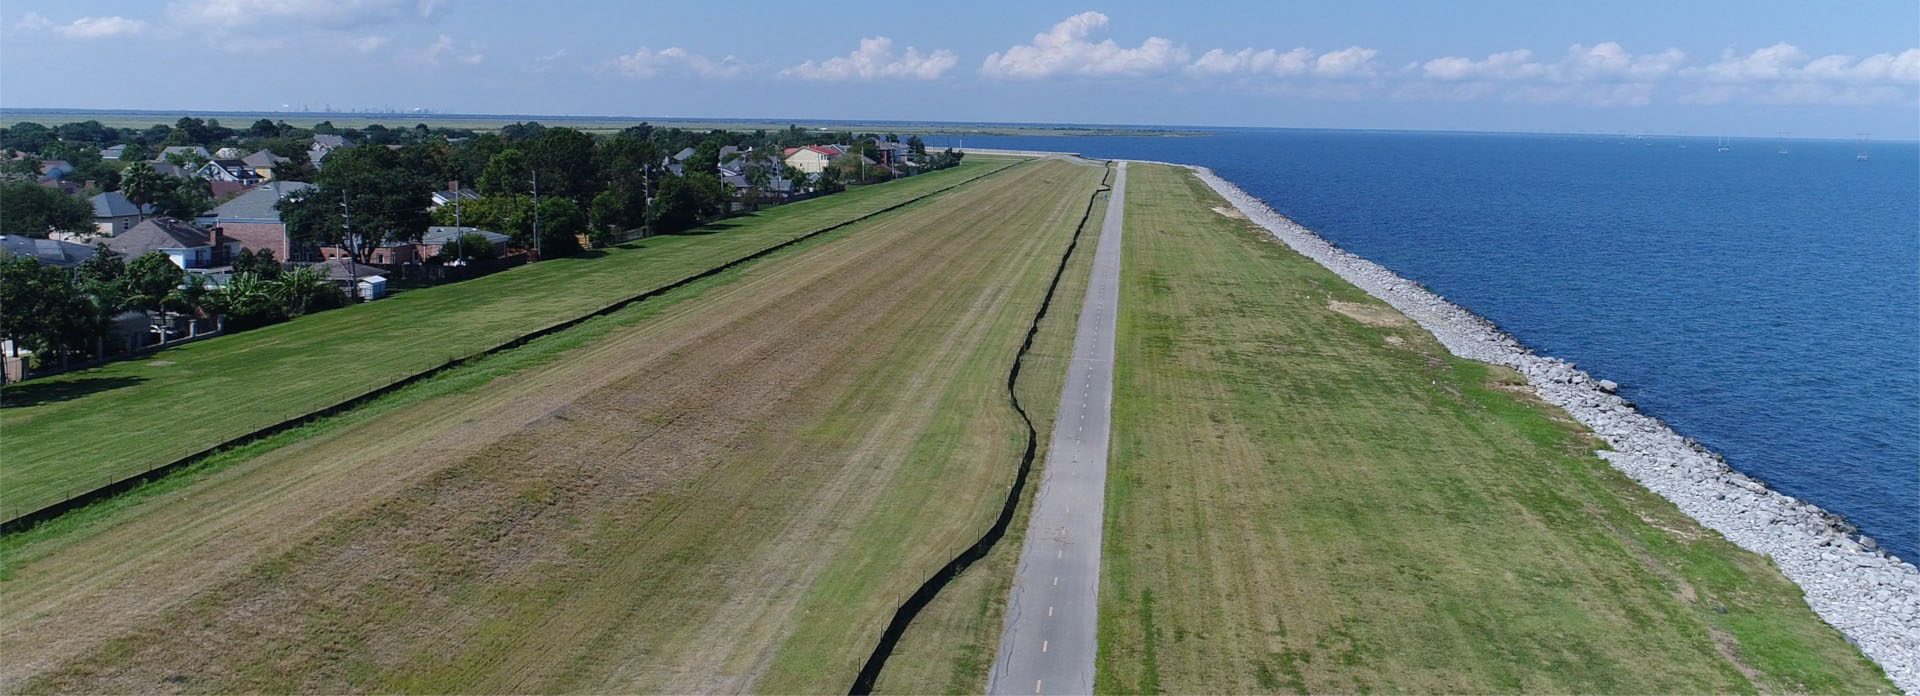 drone shot of the kenner levee with the mississippi river in the background